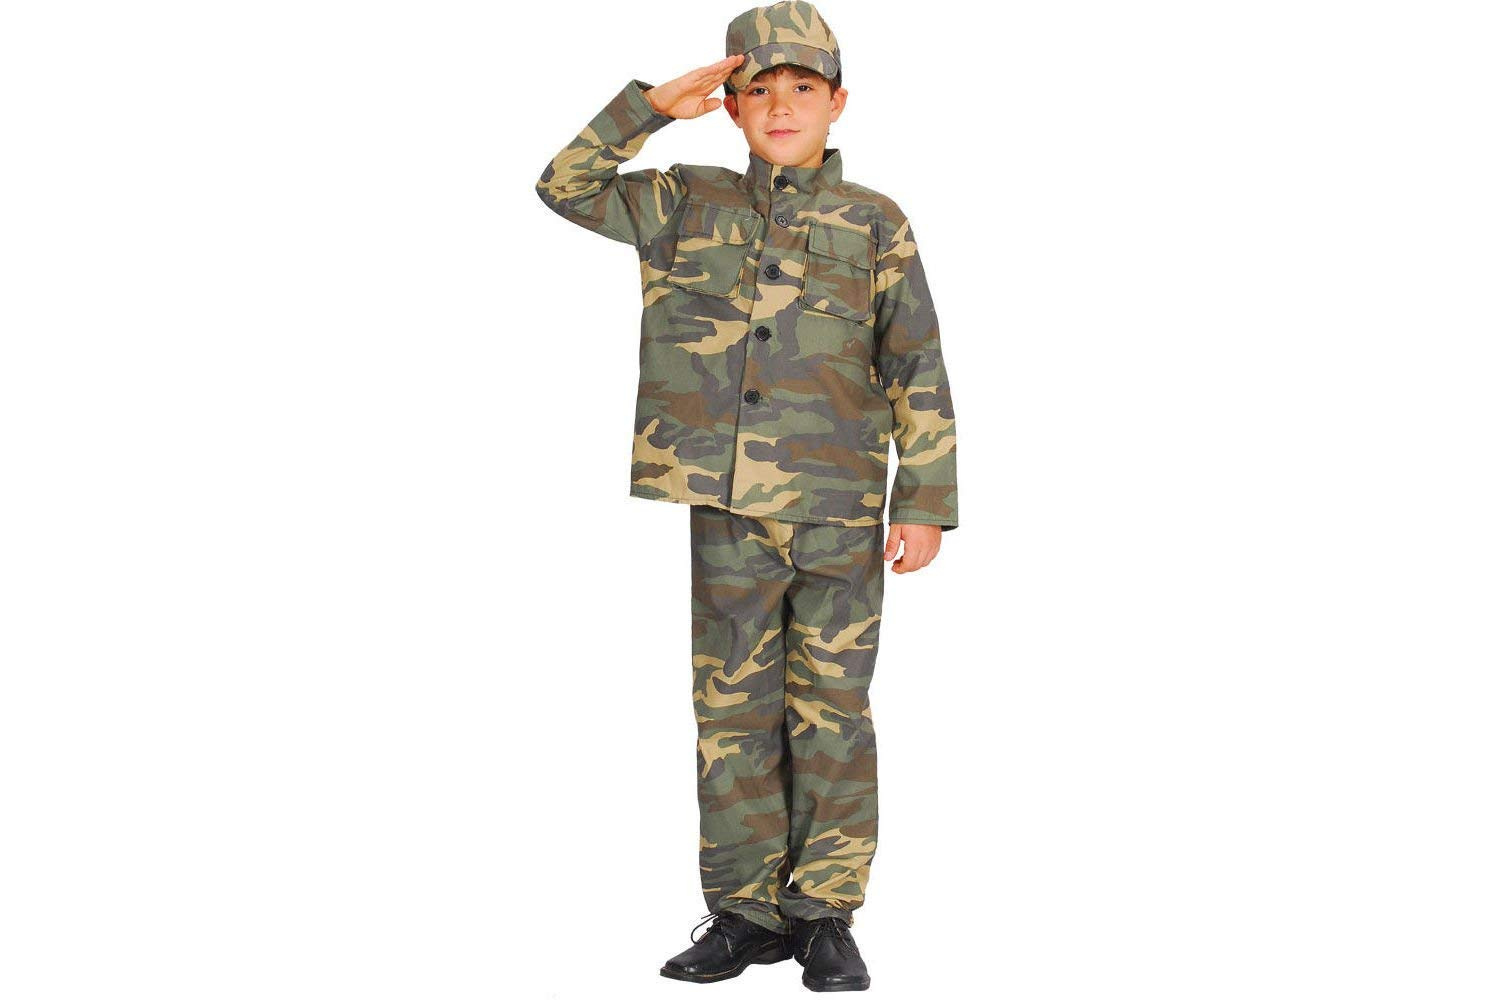 ee38f5ecce4 Army Costumes For Kids Toys  Buy Online from Fishpond.co.nz